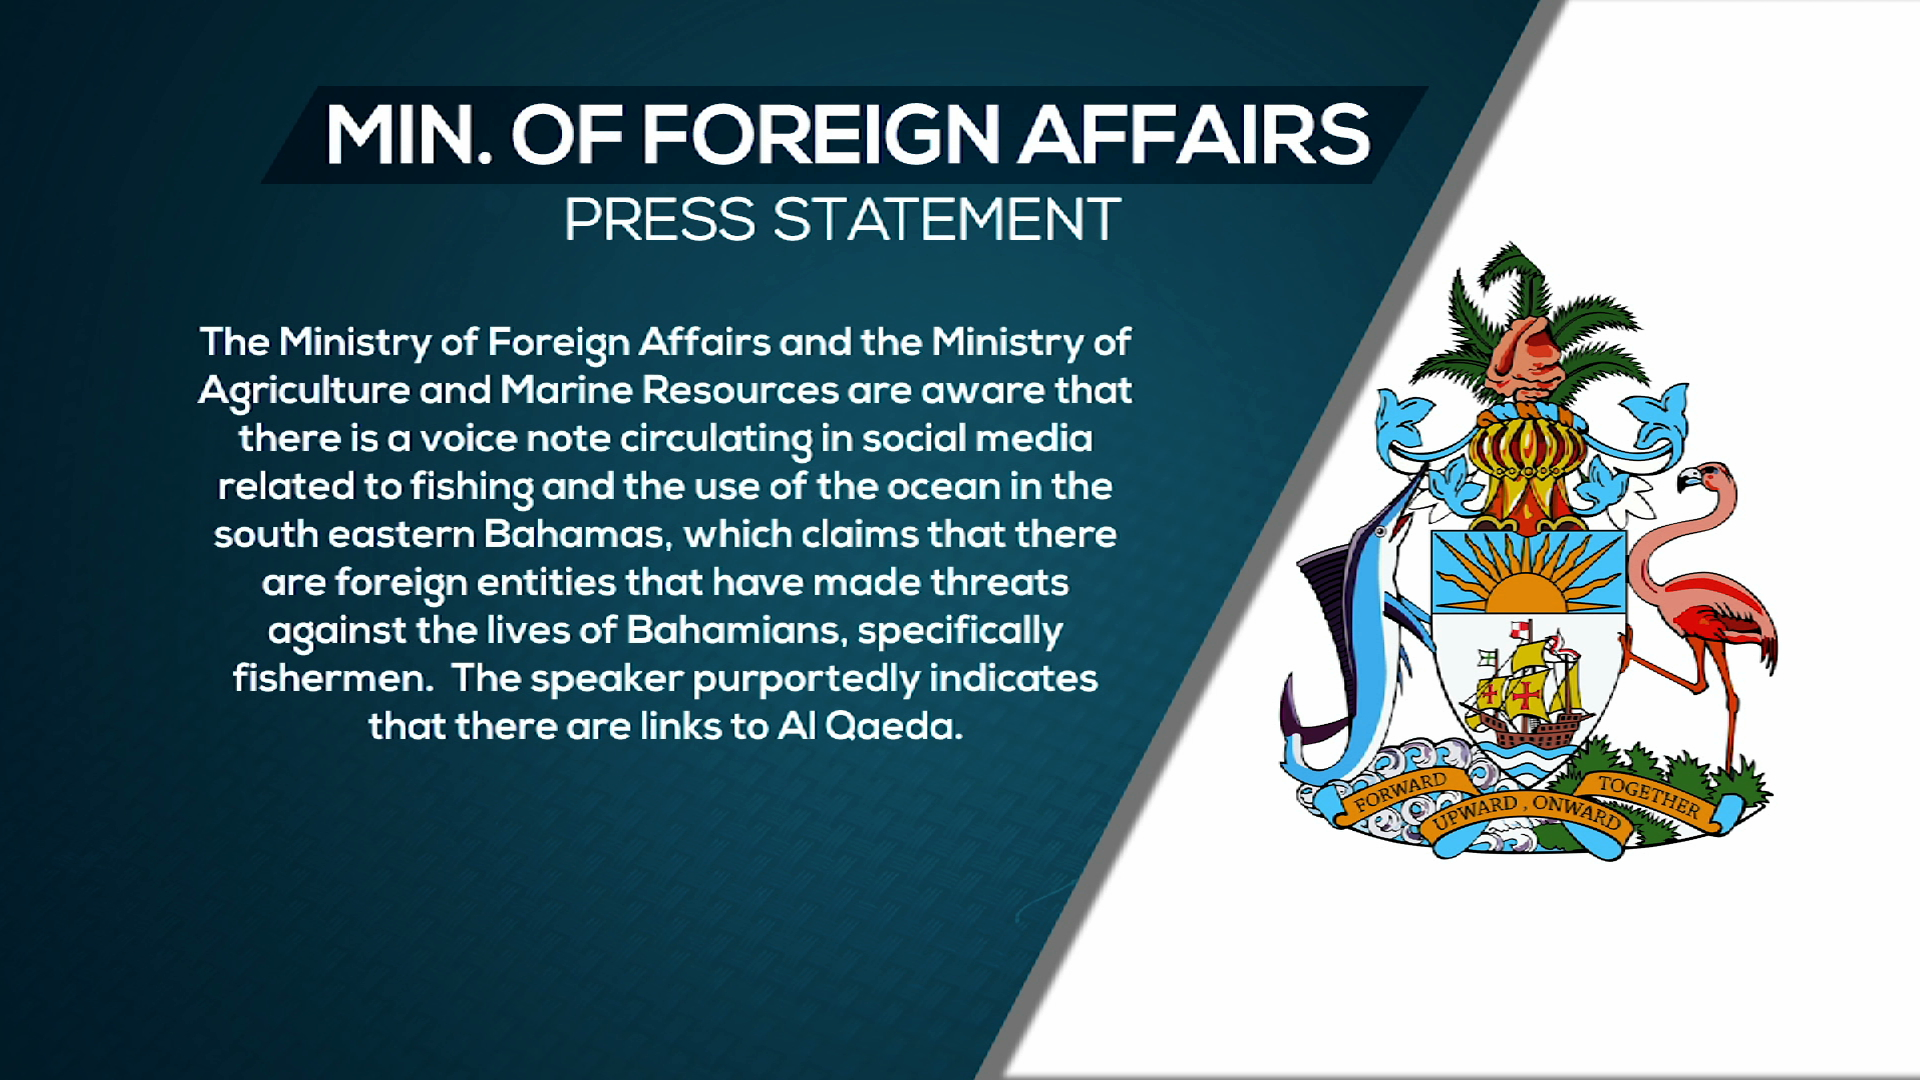 Min. of Foreign Affairs cautions Bahamians amid alleged threats